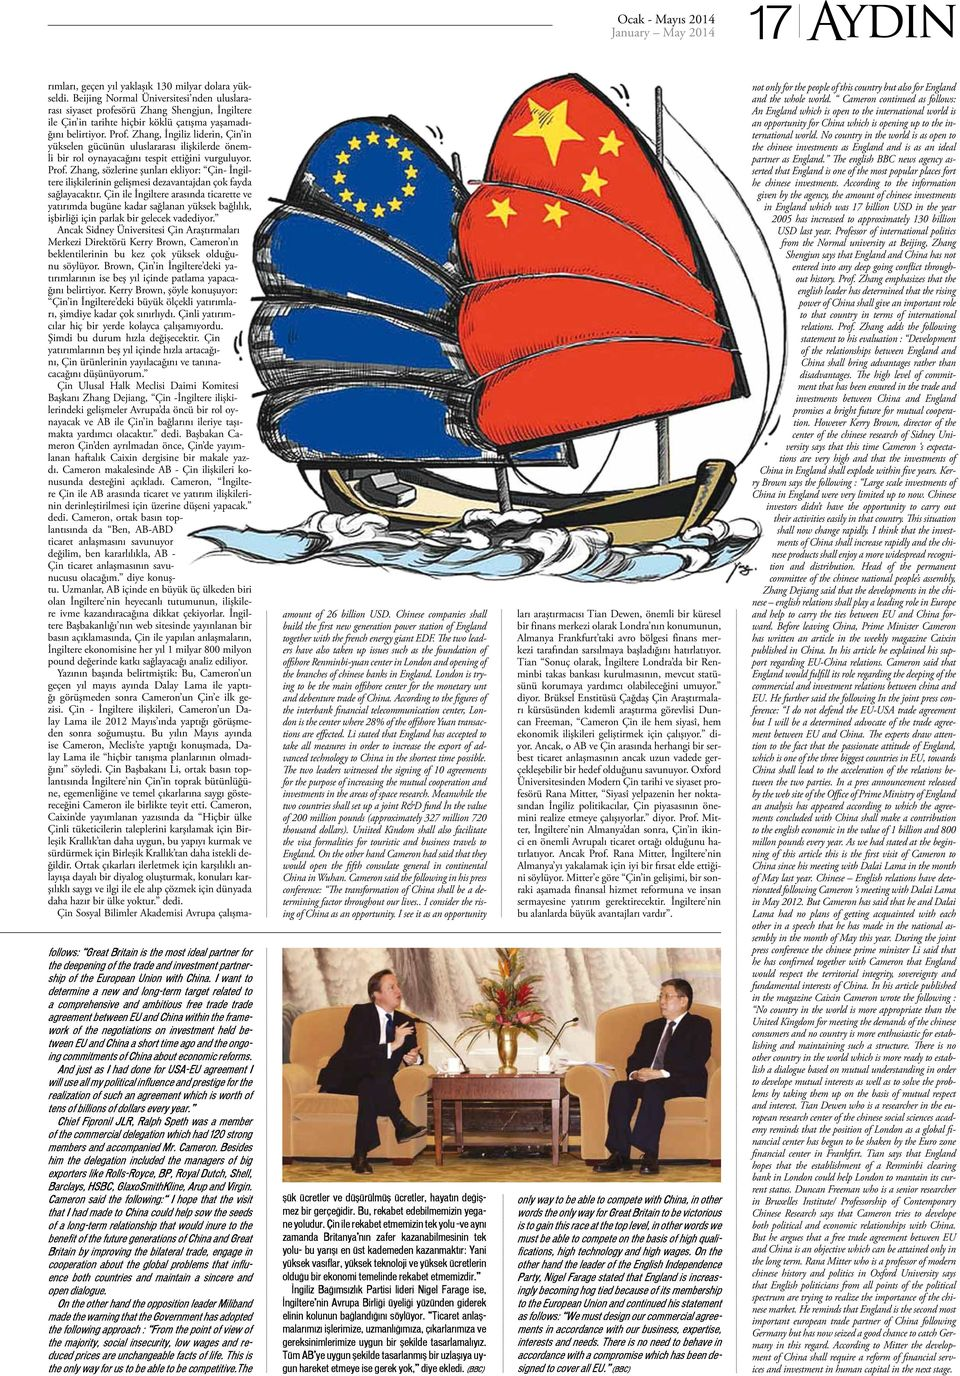 between EU and China a short time ago and the ongoing commitments of China about economic reforms.